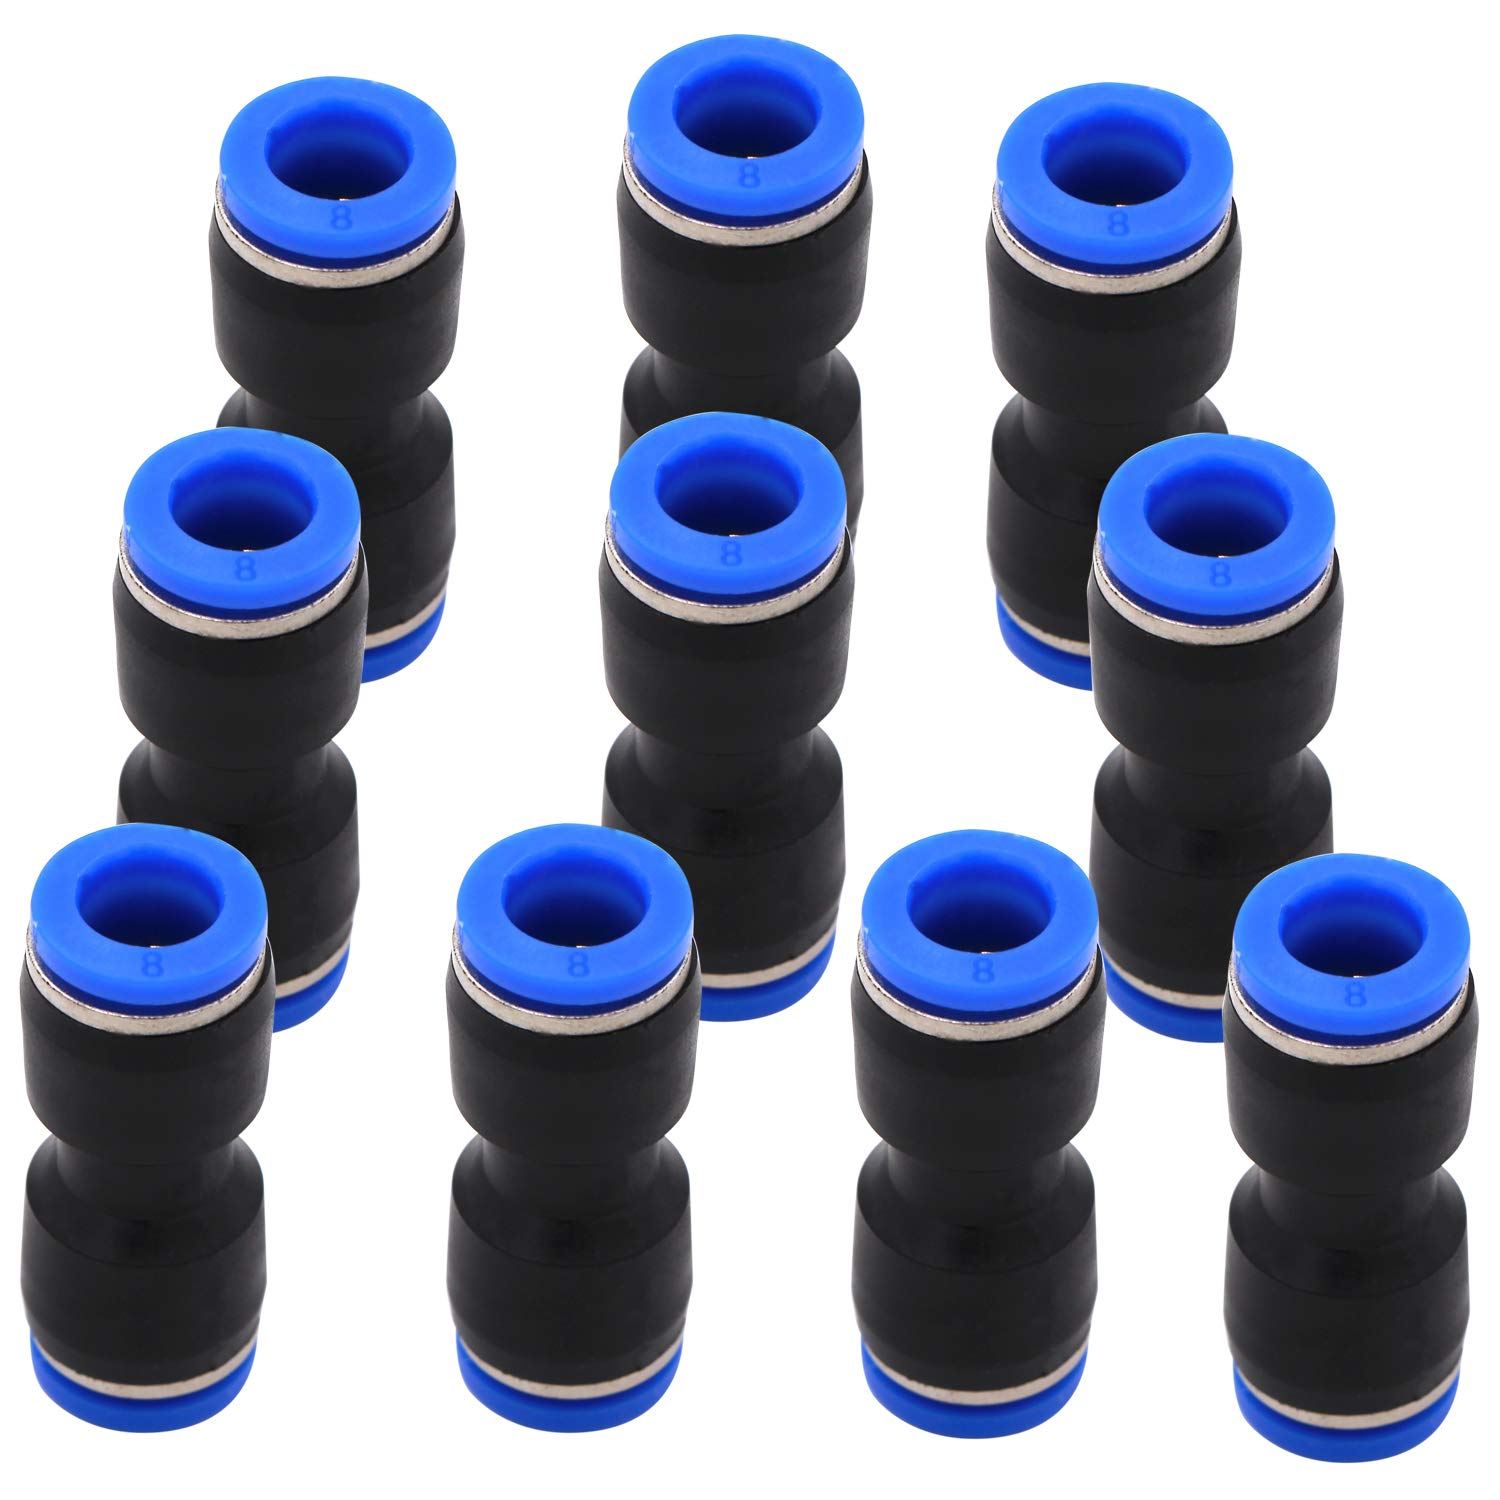 Quick Connect Fittings 8mm or or 5/16 OD - DERNORD 10 Pack Plastic Push to Connect Fittings Tube Straight Connect 8Mm to 8Mm Push Fit Fittings Tube Fittings Push Lock